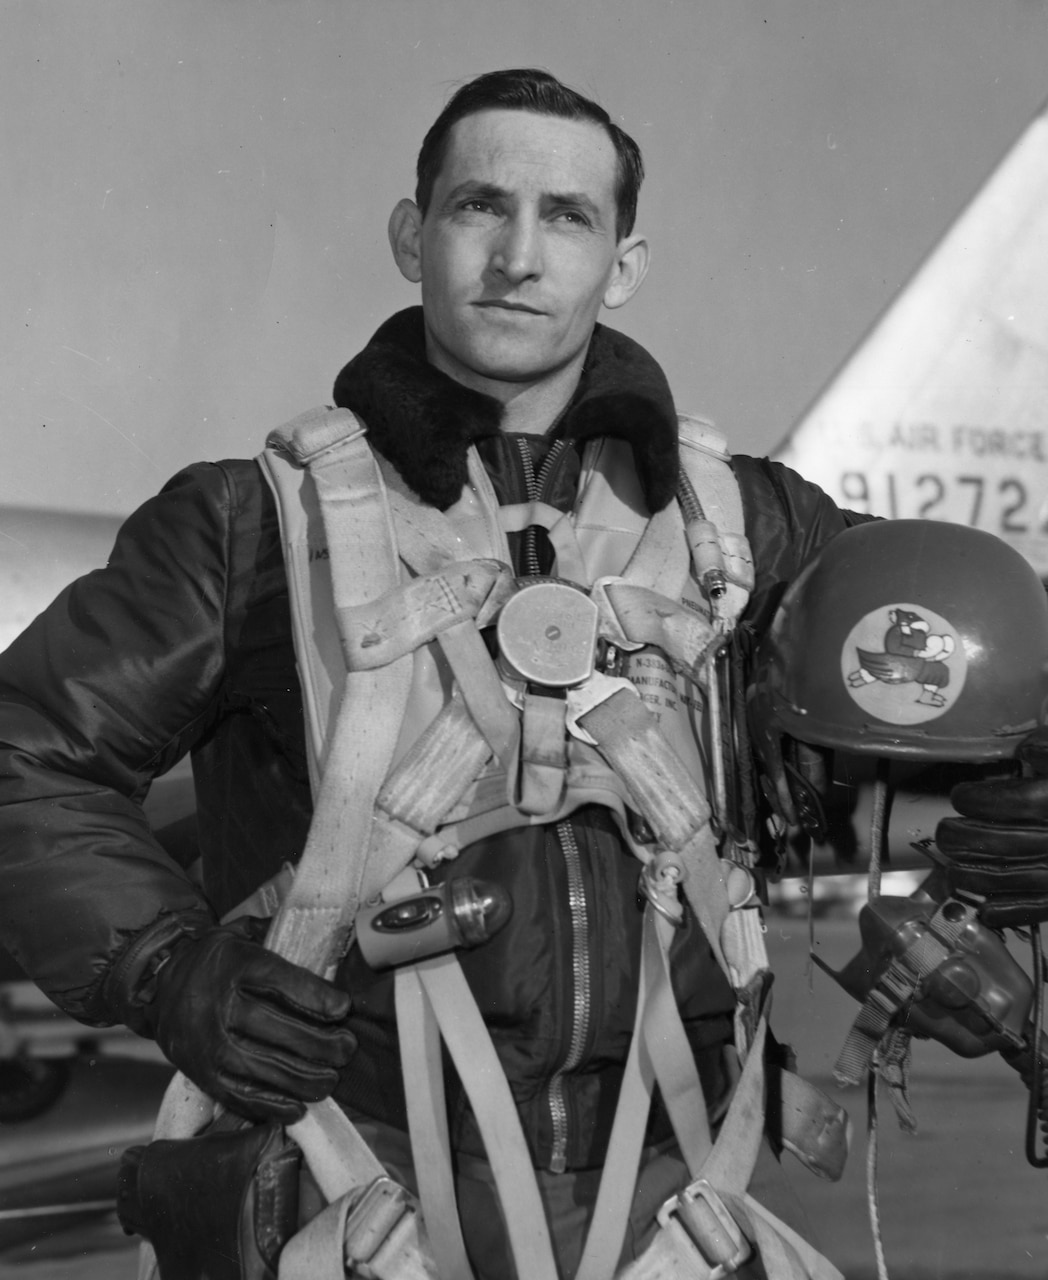 A pilot holds his parachute gear in one hand and his helmet in the other.